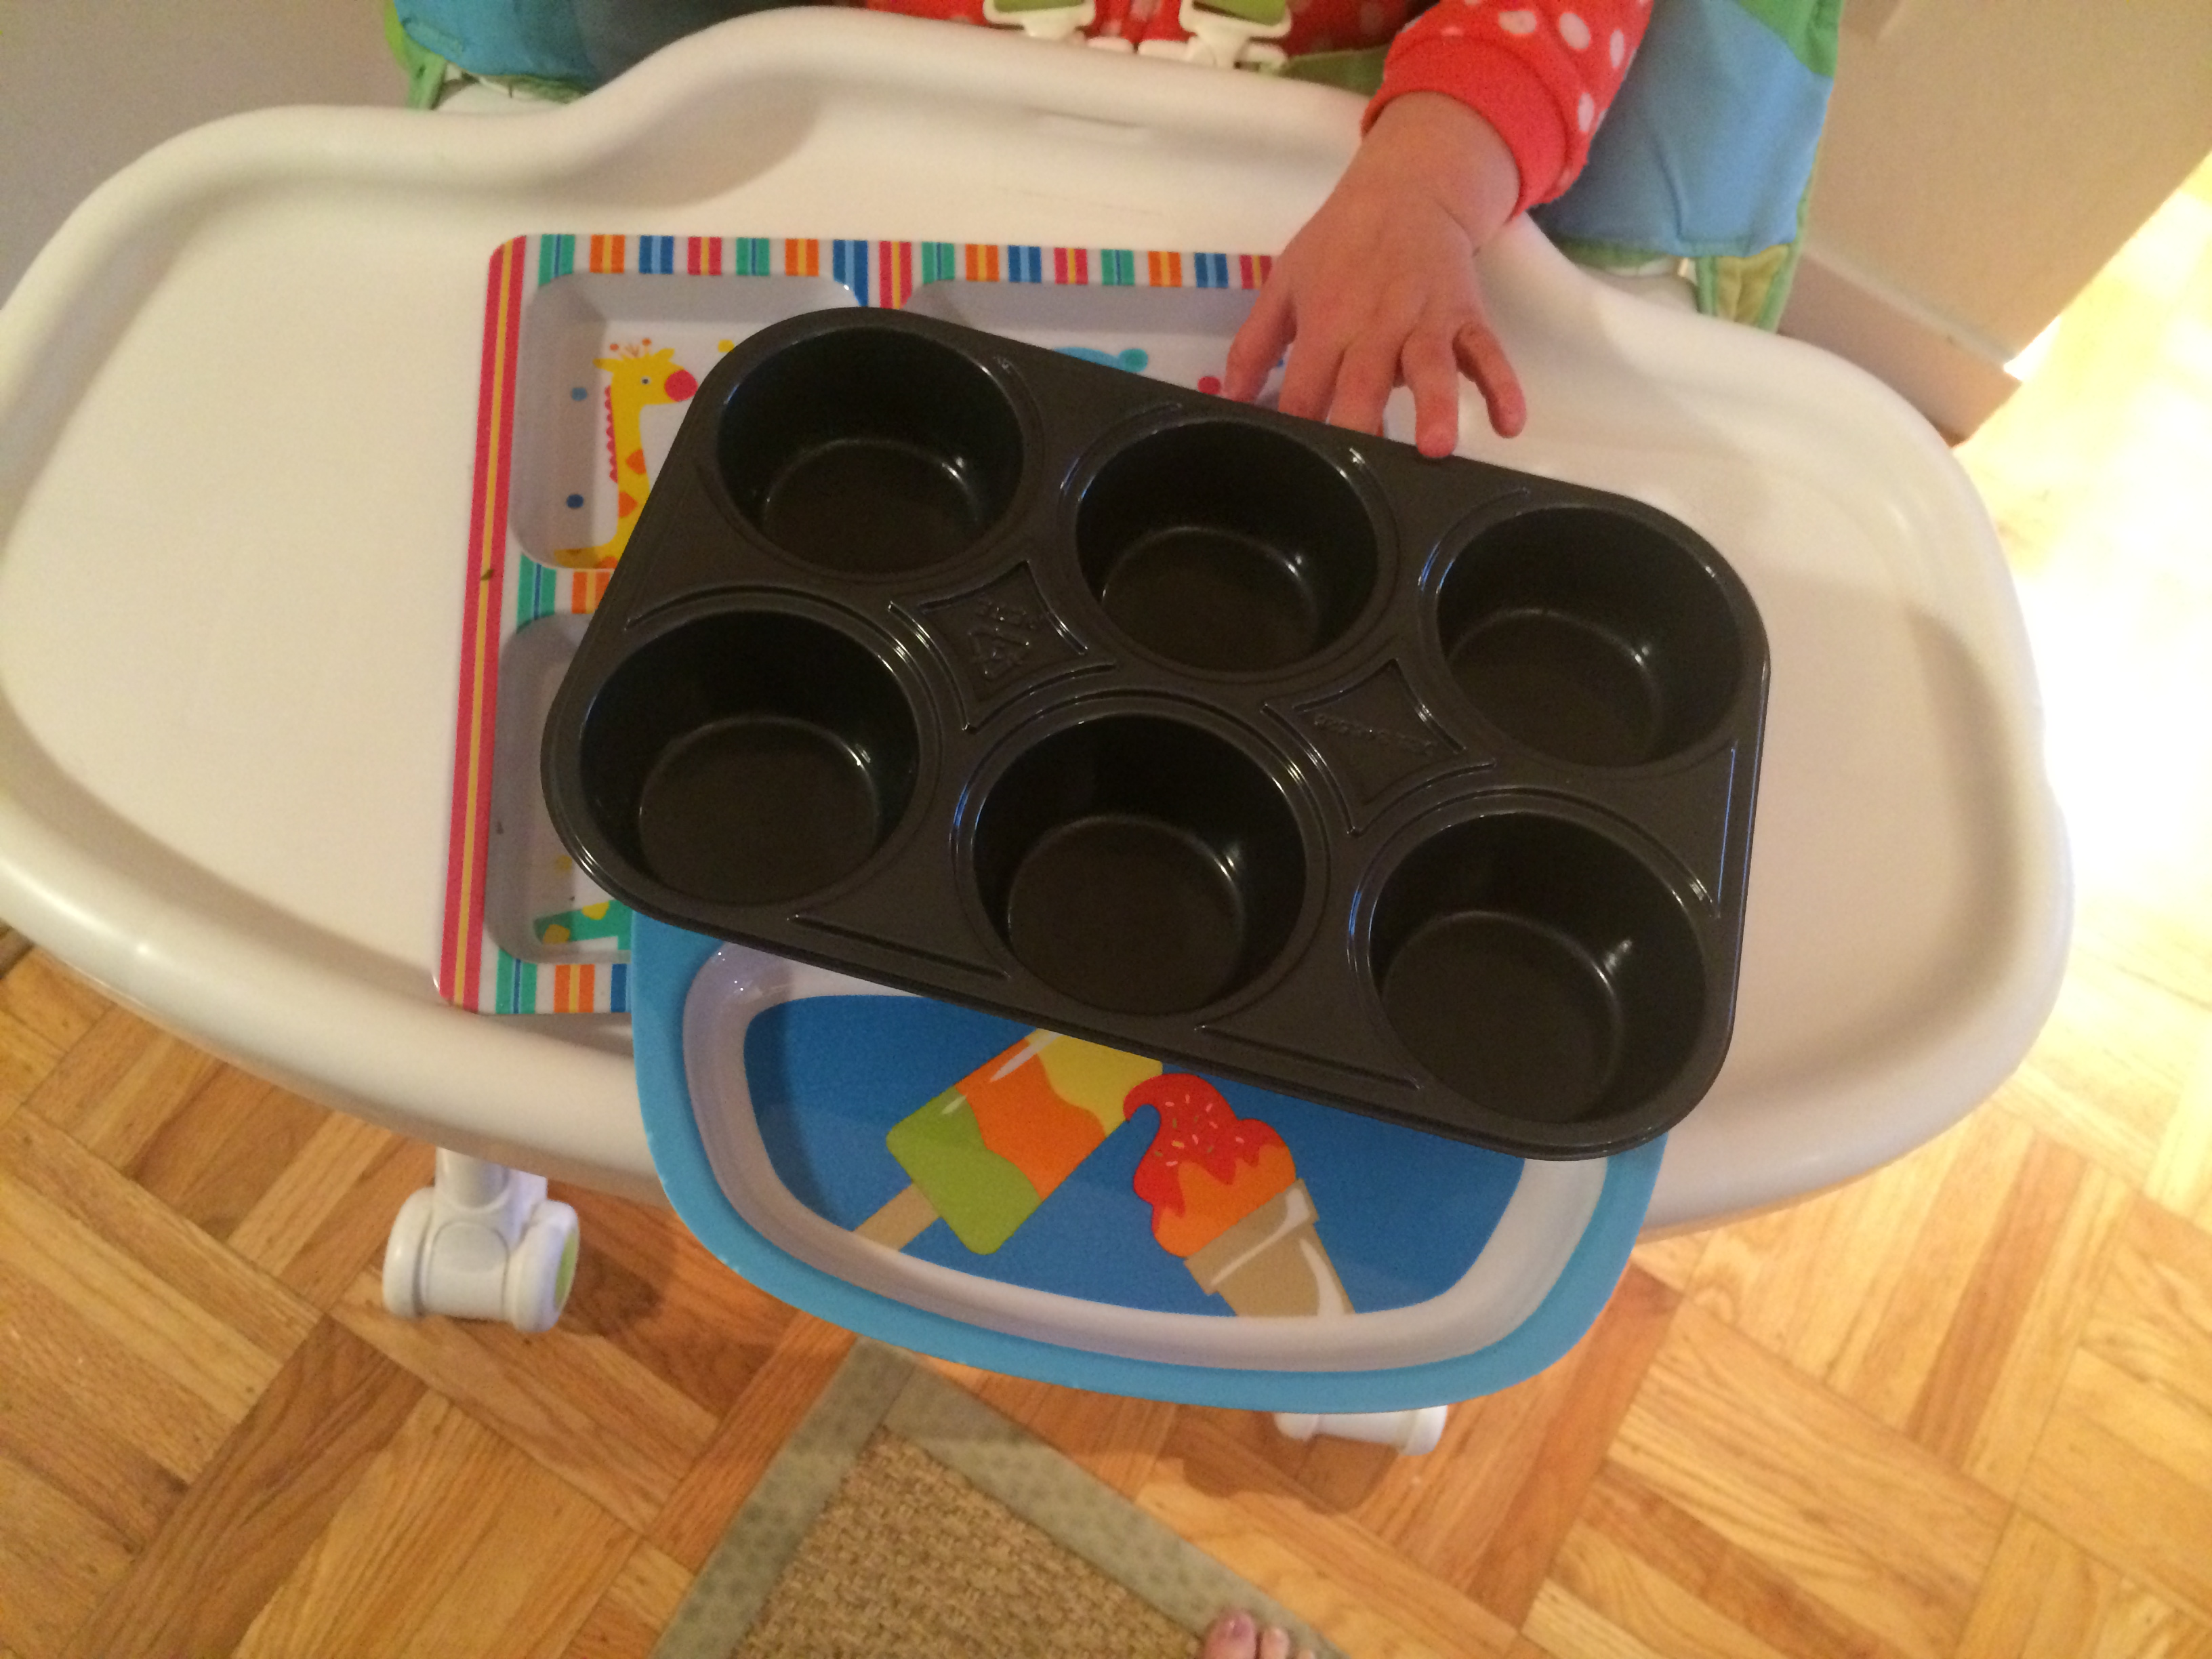 Today's Hint: The Budget-Friendly Baby & Toddler Plate